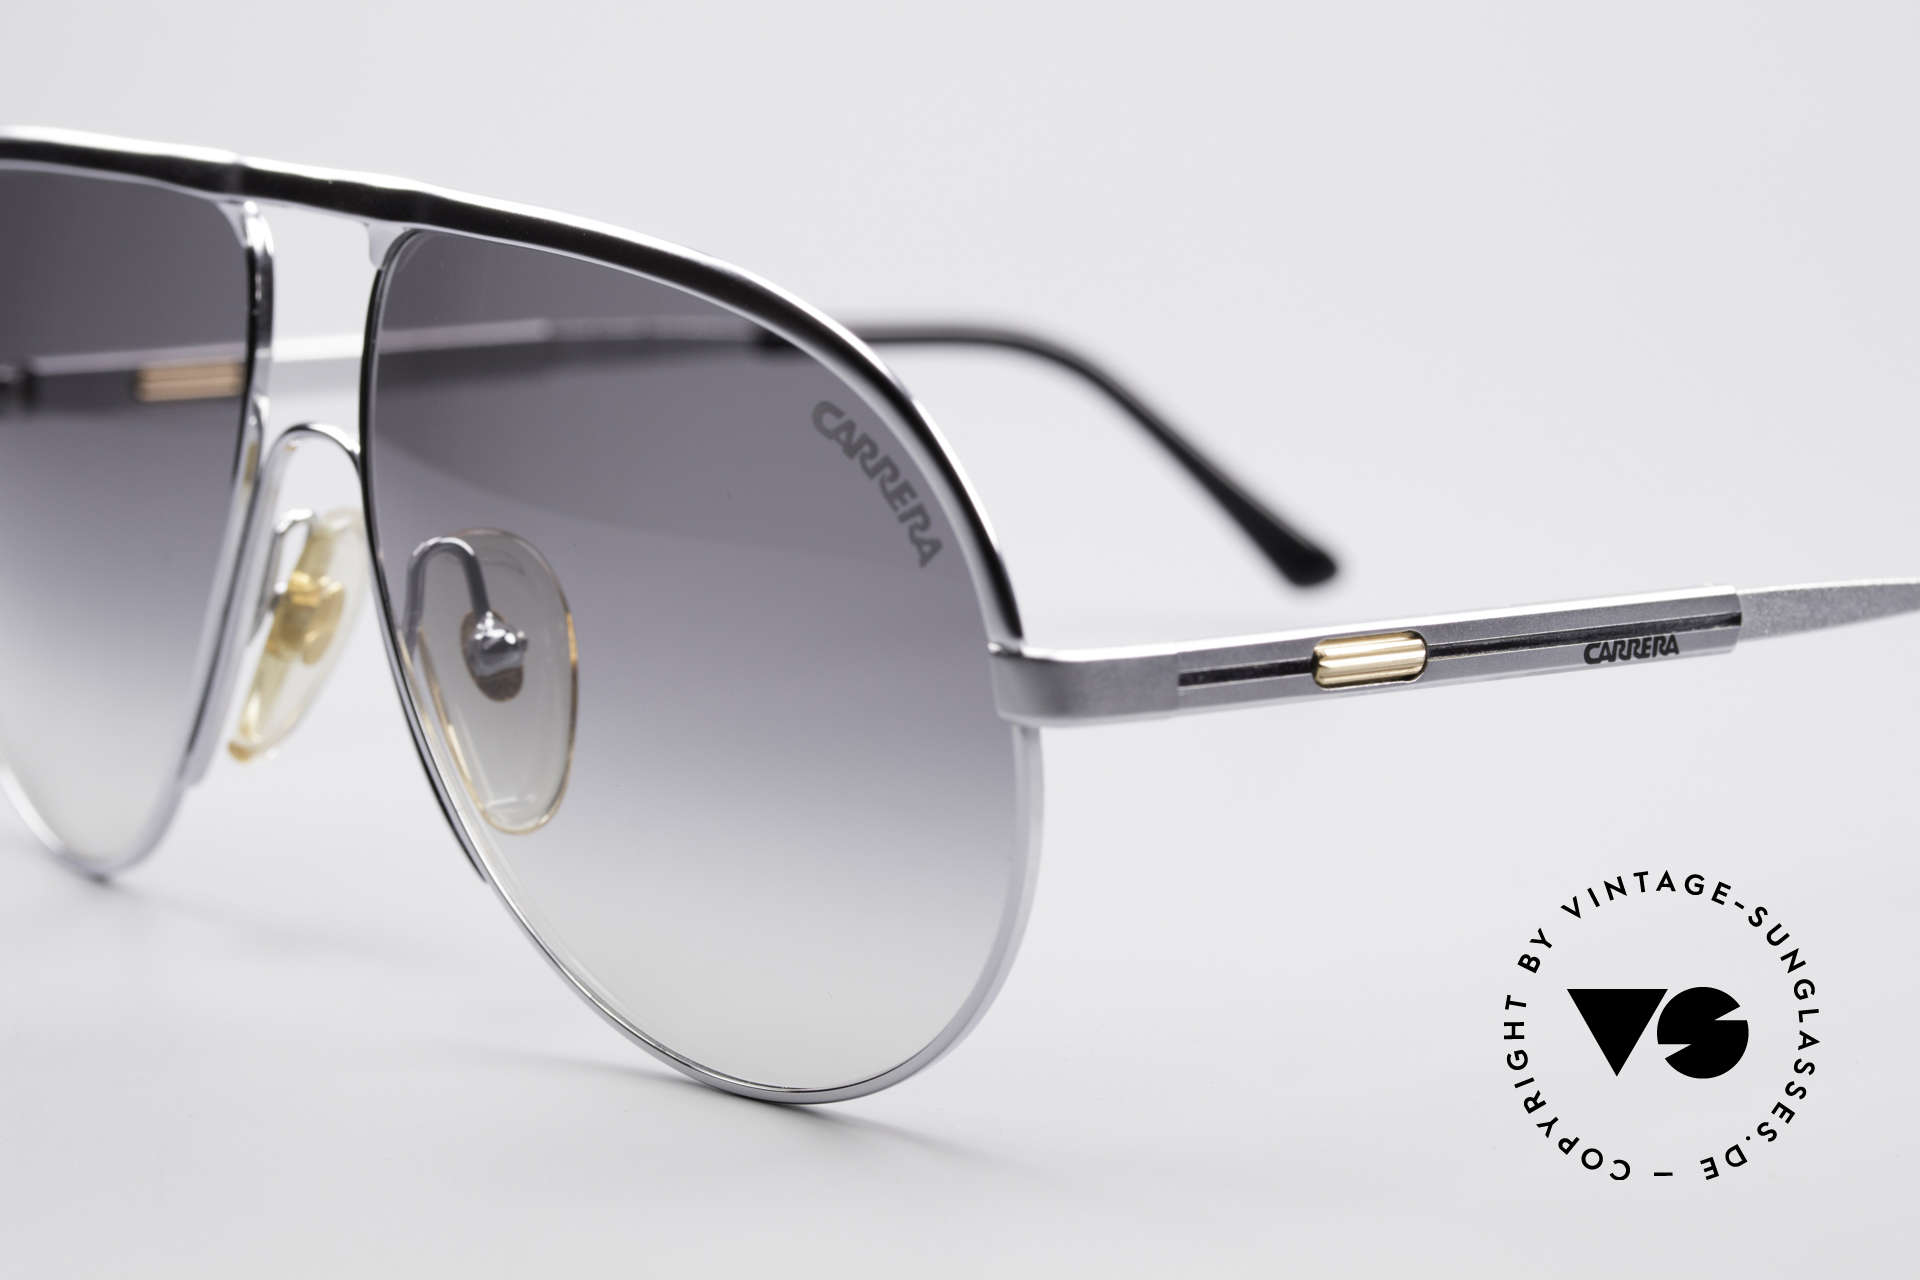 Carrera 5305 Adjustable Sunglasses, hybrid between functionality; quality; luxury lifestyle, Made for Men